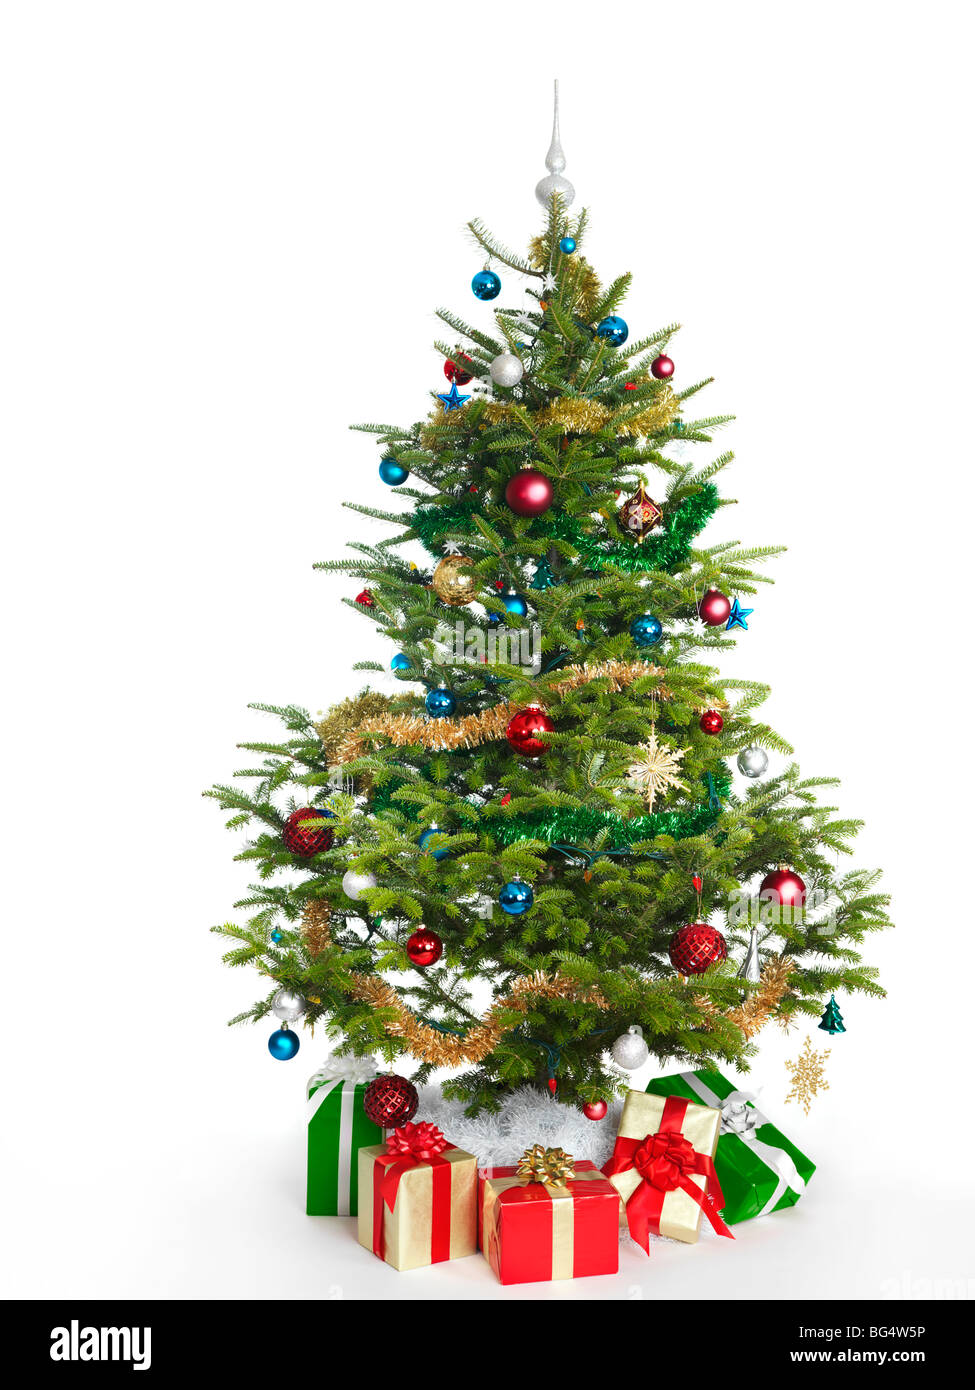 decorated real christmas tree isolated on white background stock image - How Long Do Real Christmas Trees Last